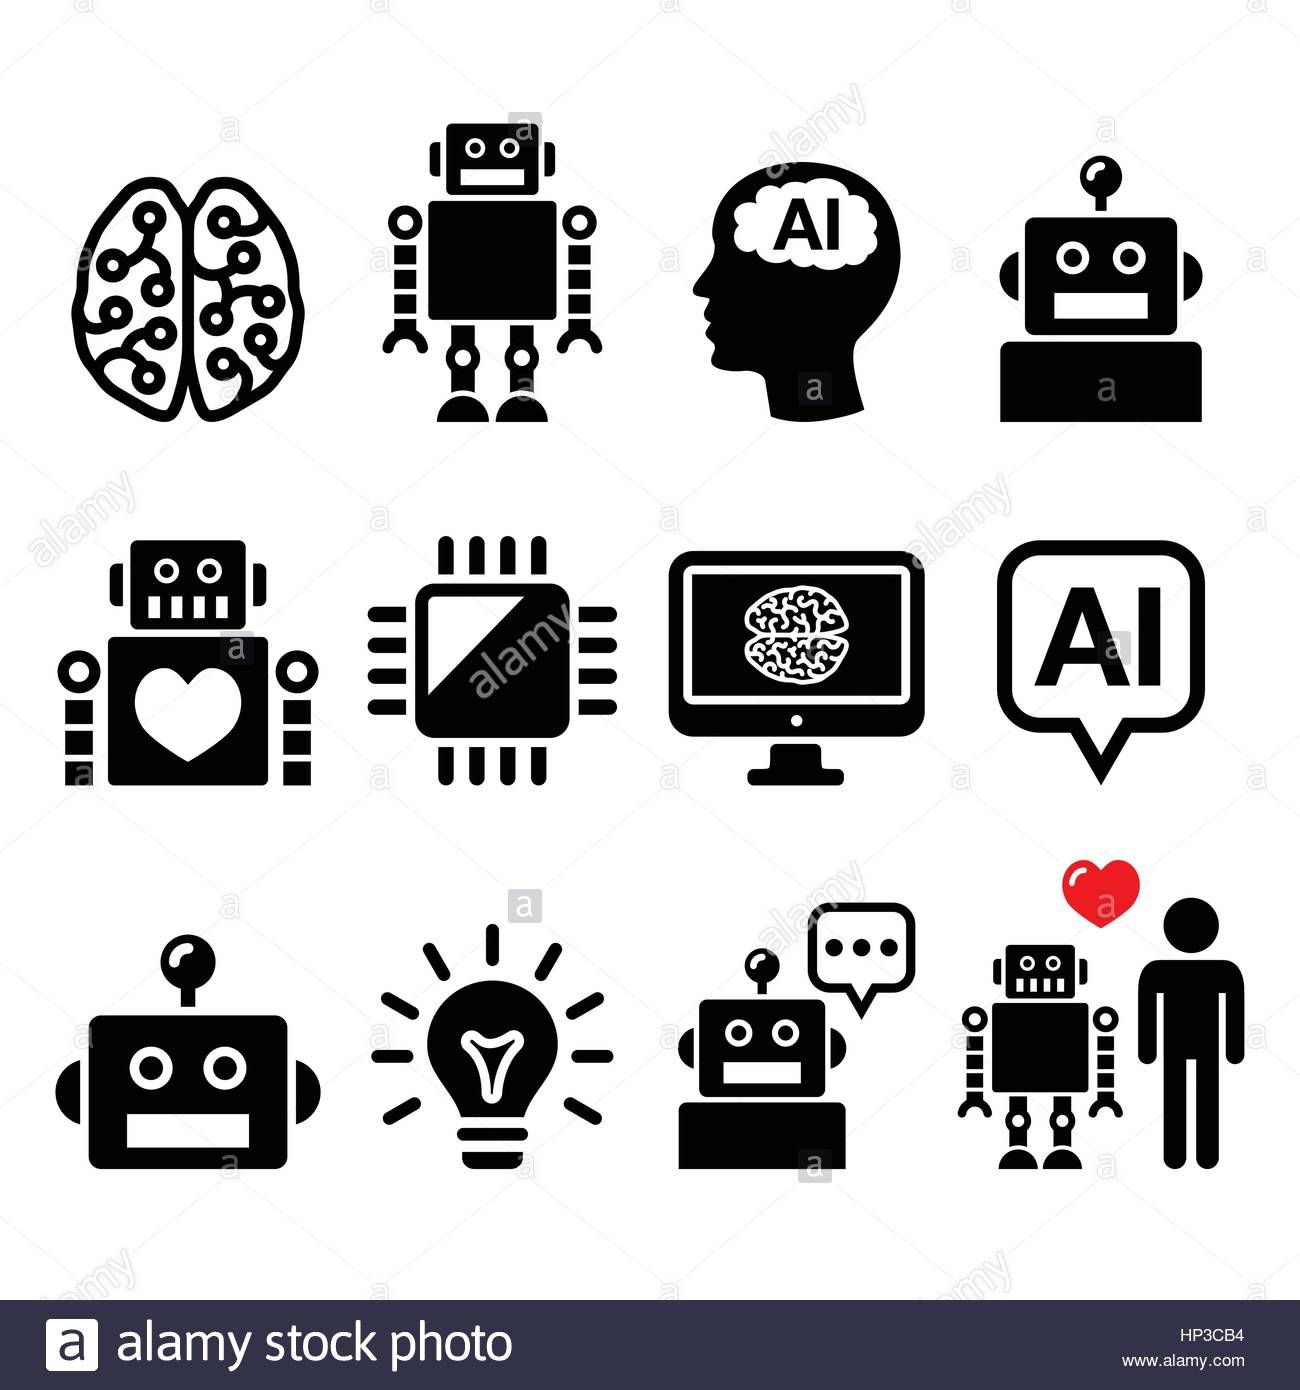 Pin By Yan Zhan On Ppt Artificial Intelligence Robot Icon